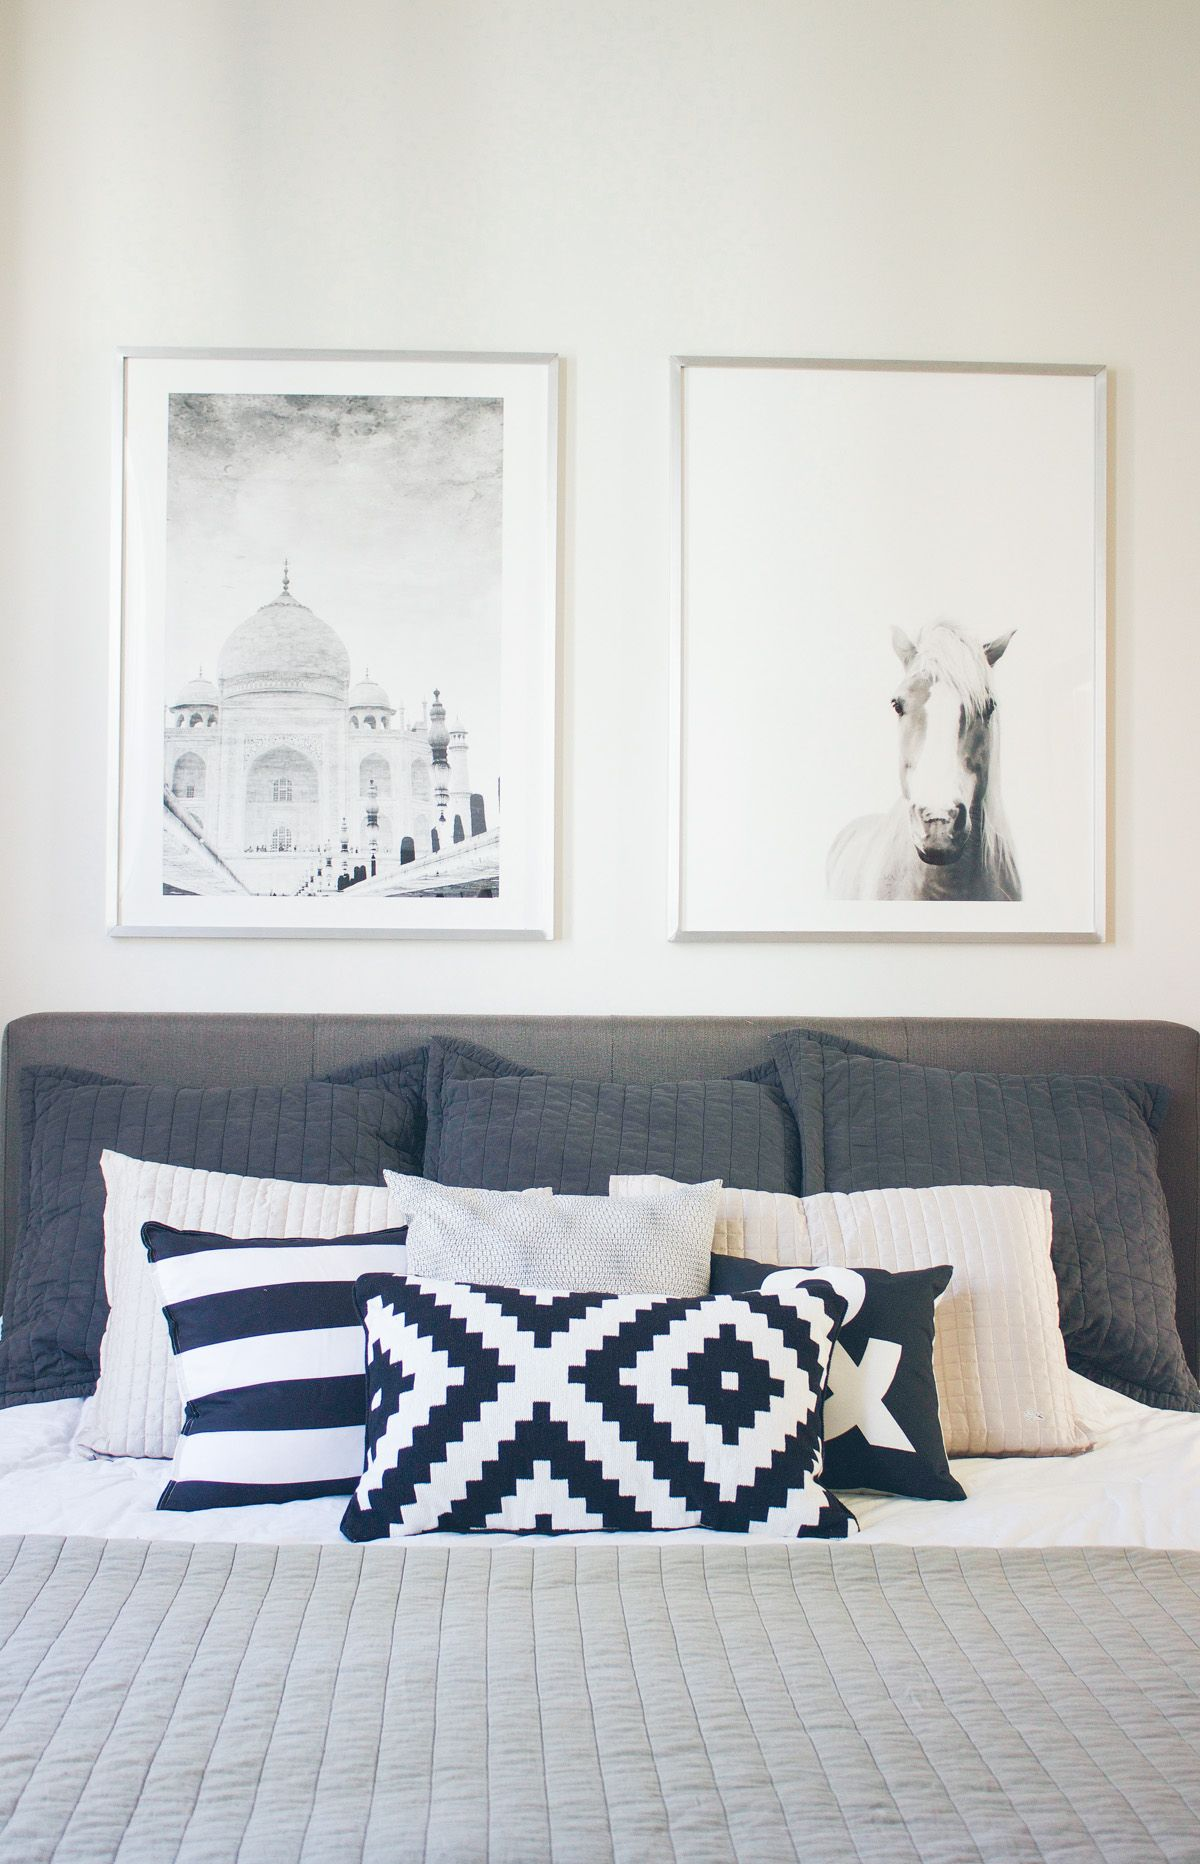 Master bedroom artwork  A Peek Into Our New Place  Bedrooms Pillows and Black